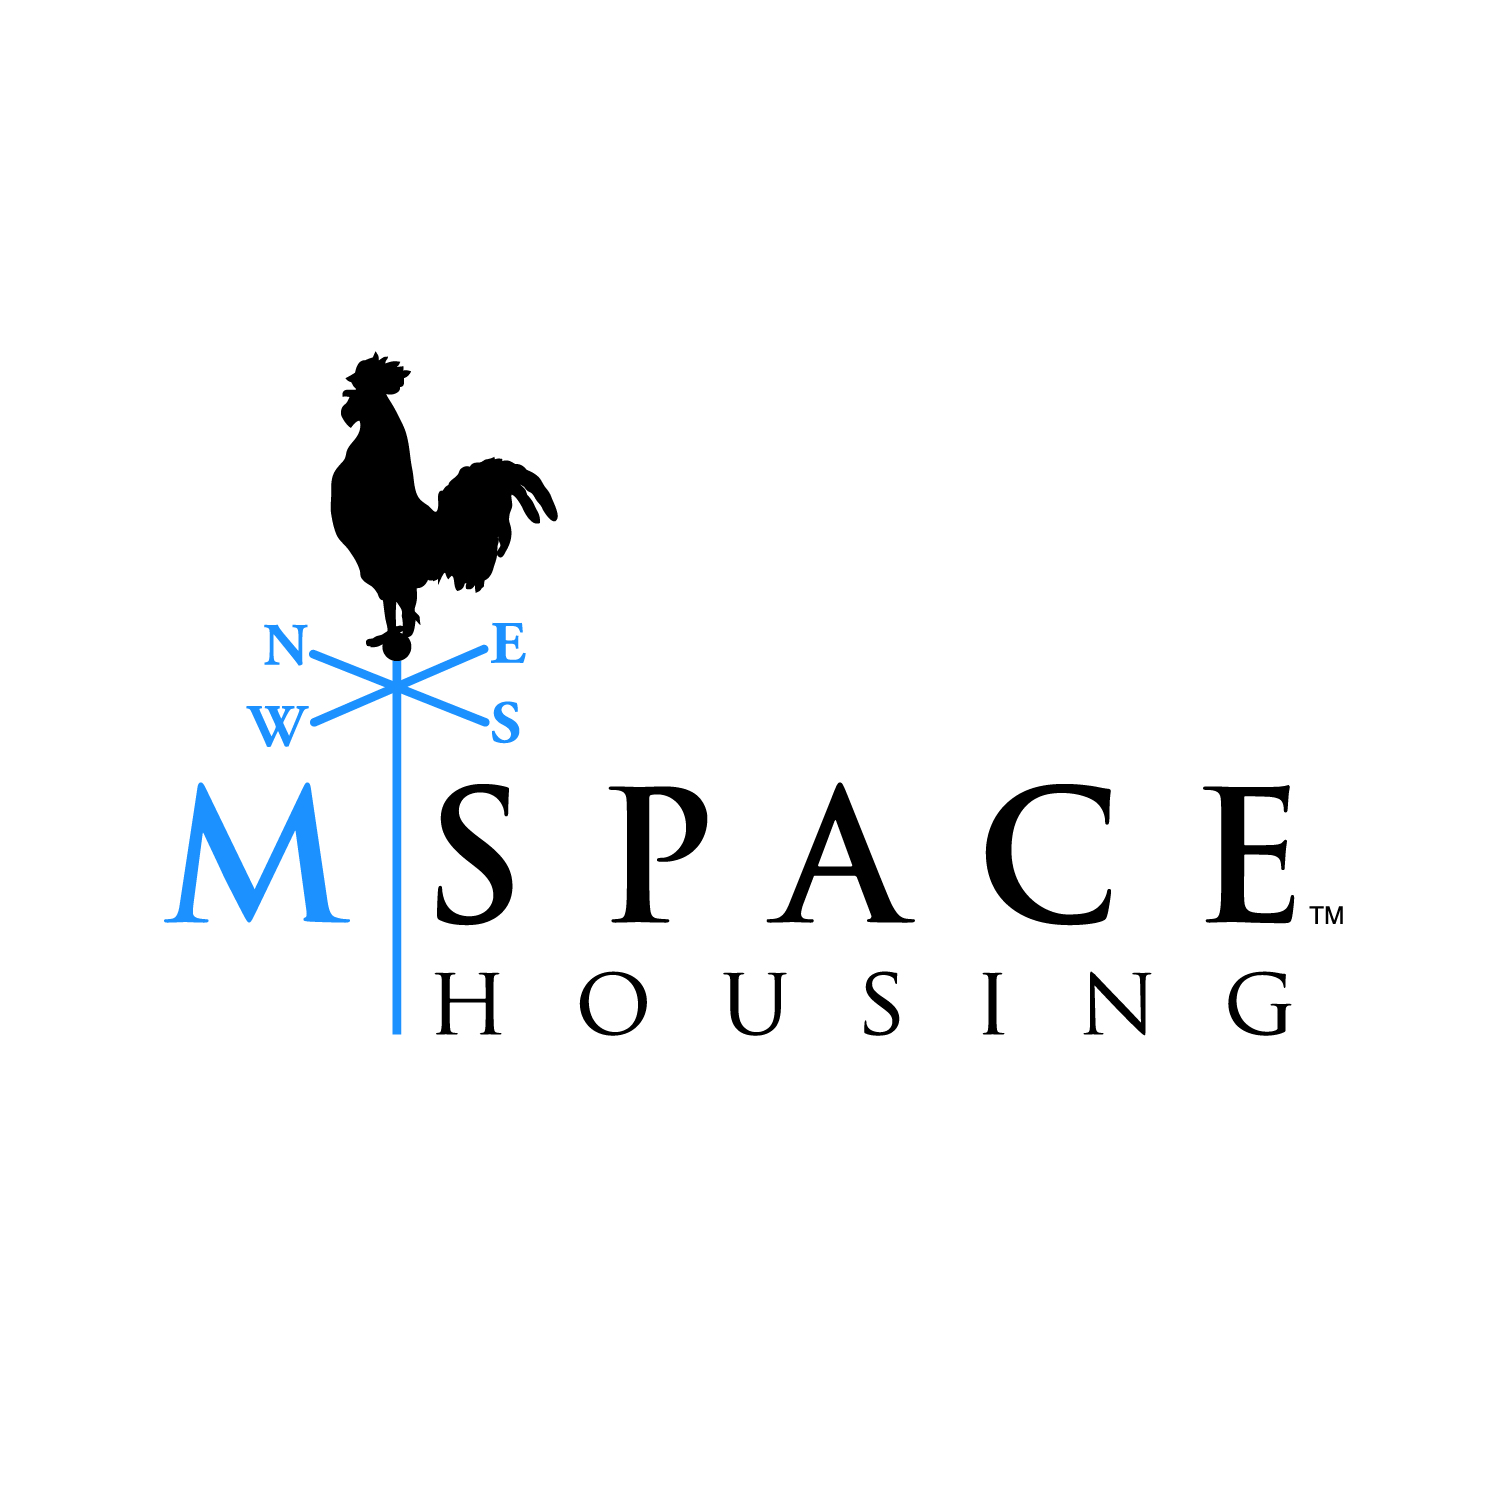 M SPACE To Hold Open House For New Housing Developments In